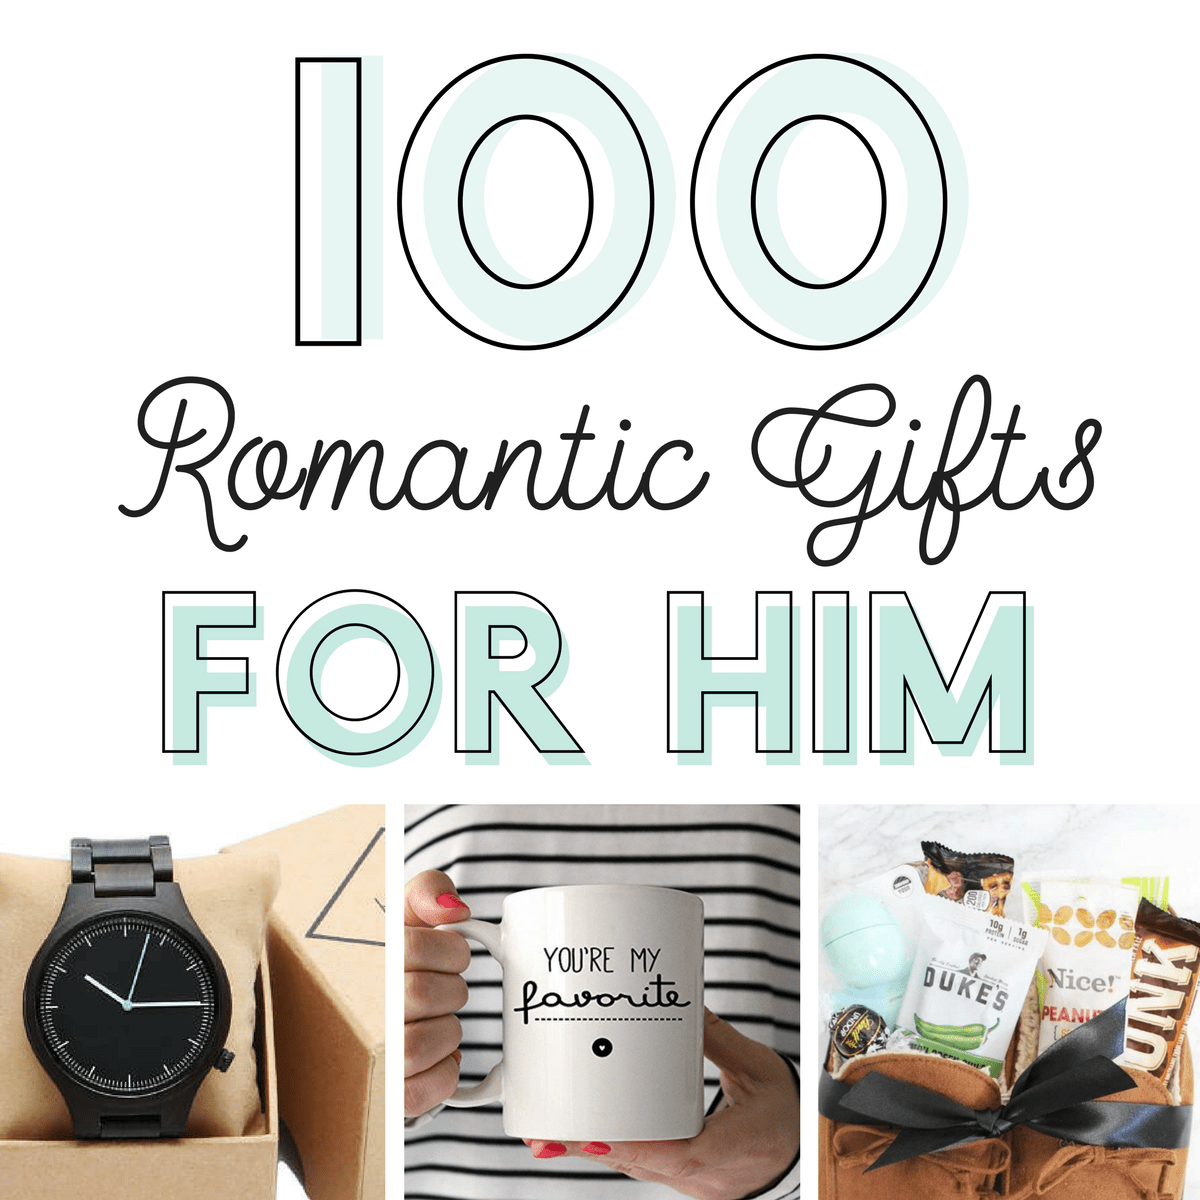 100 romantic gifts for